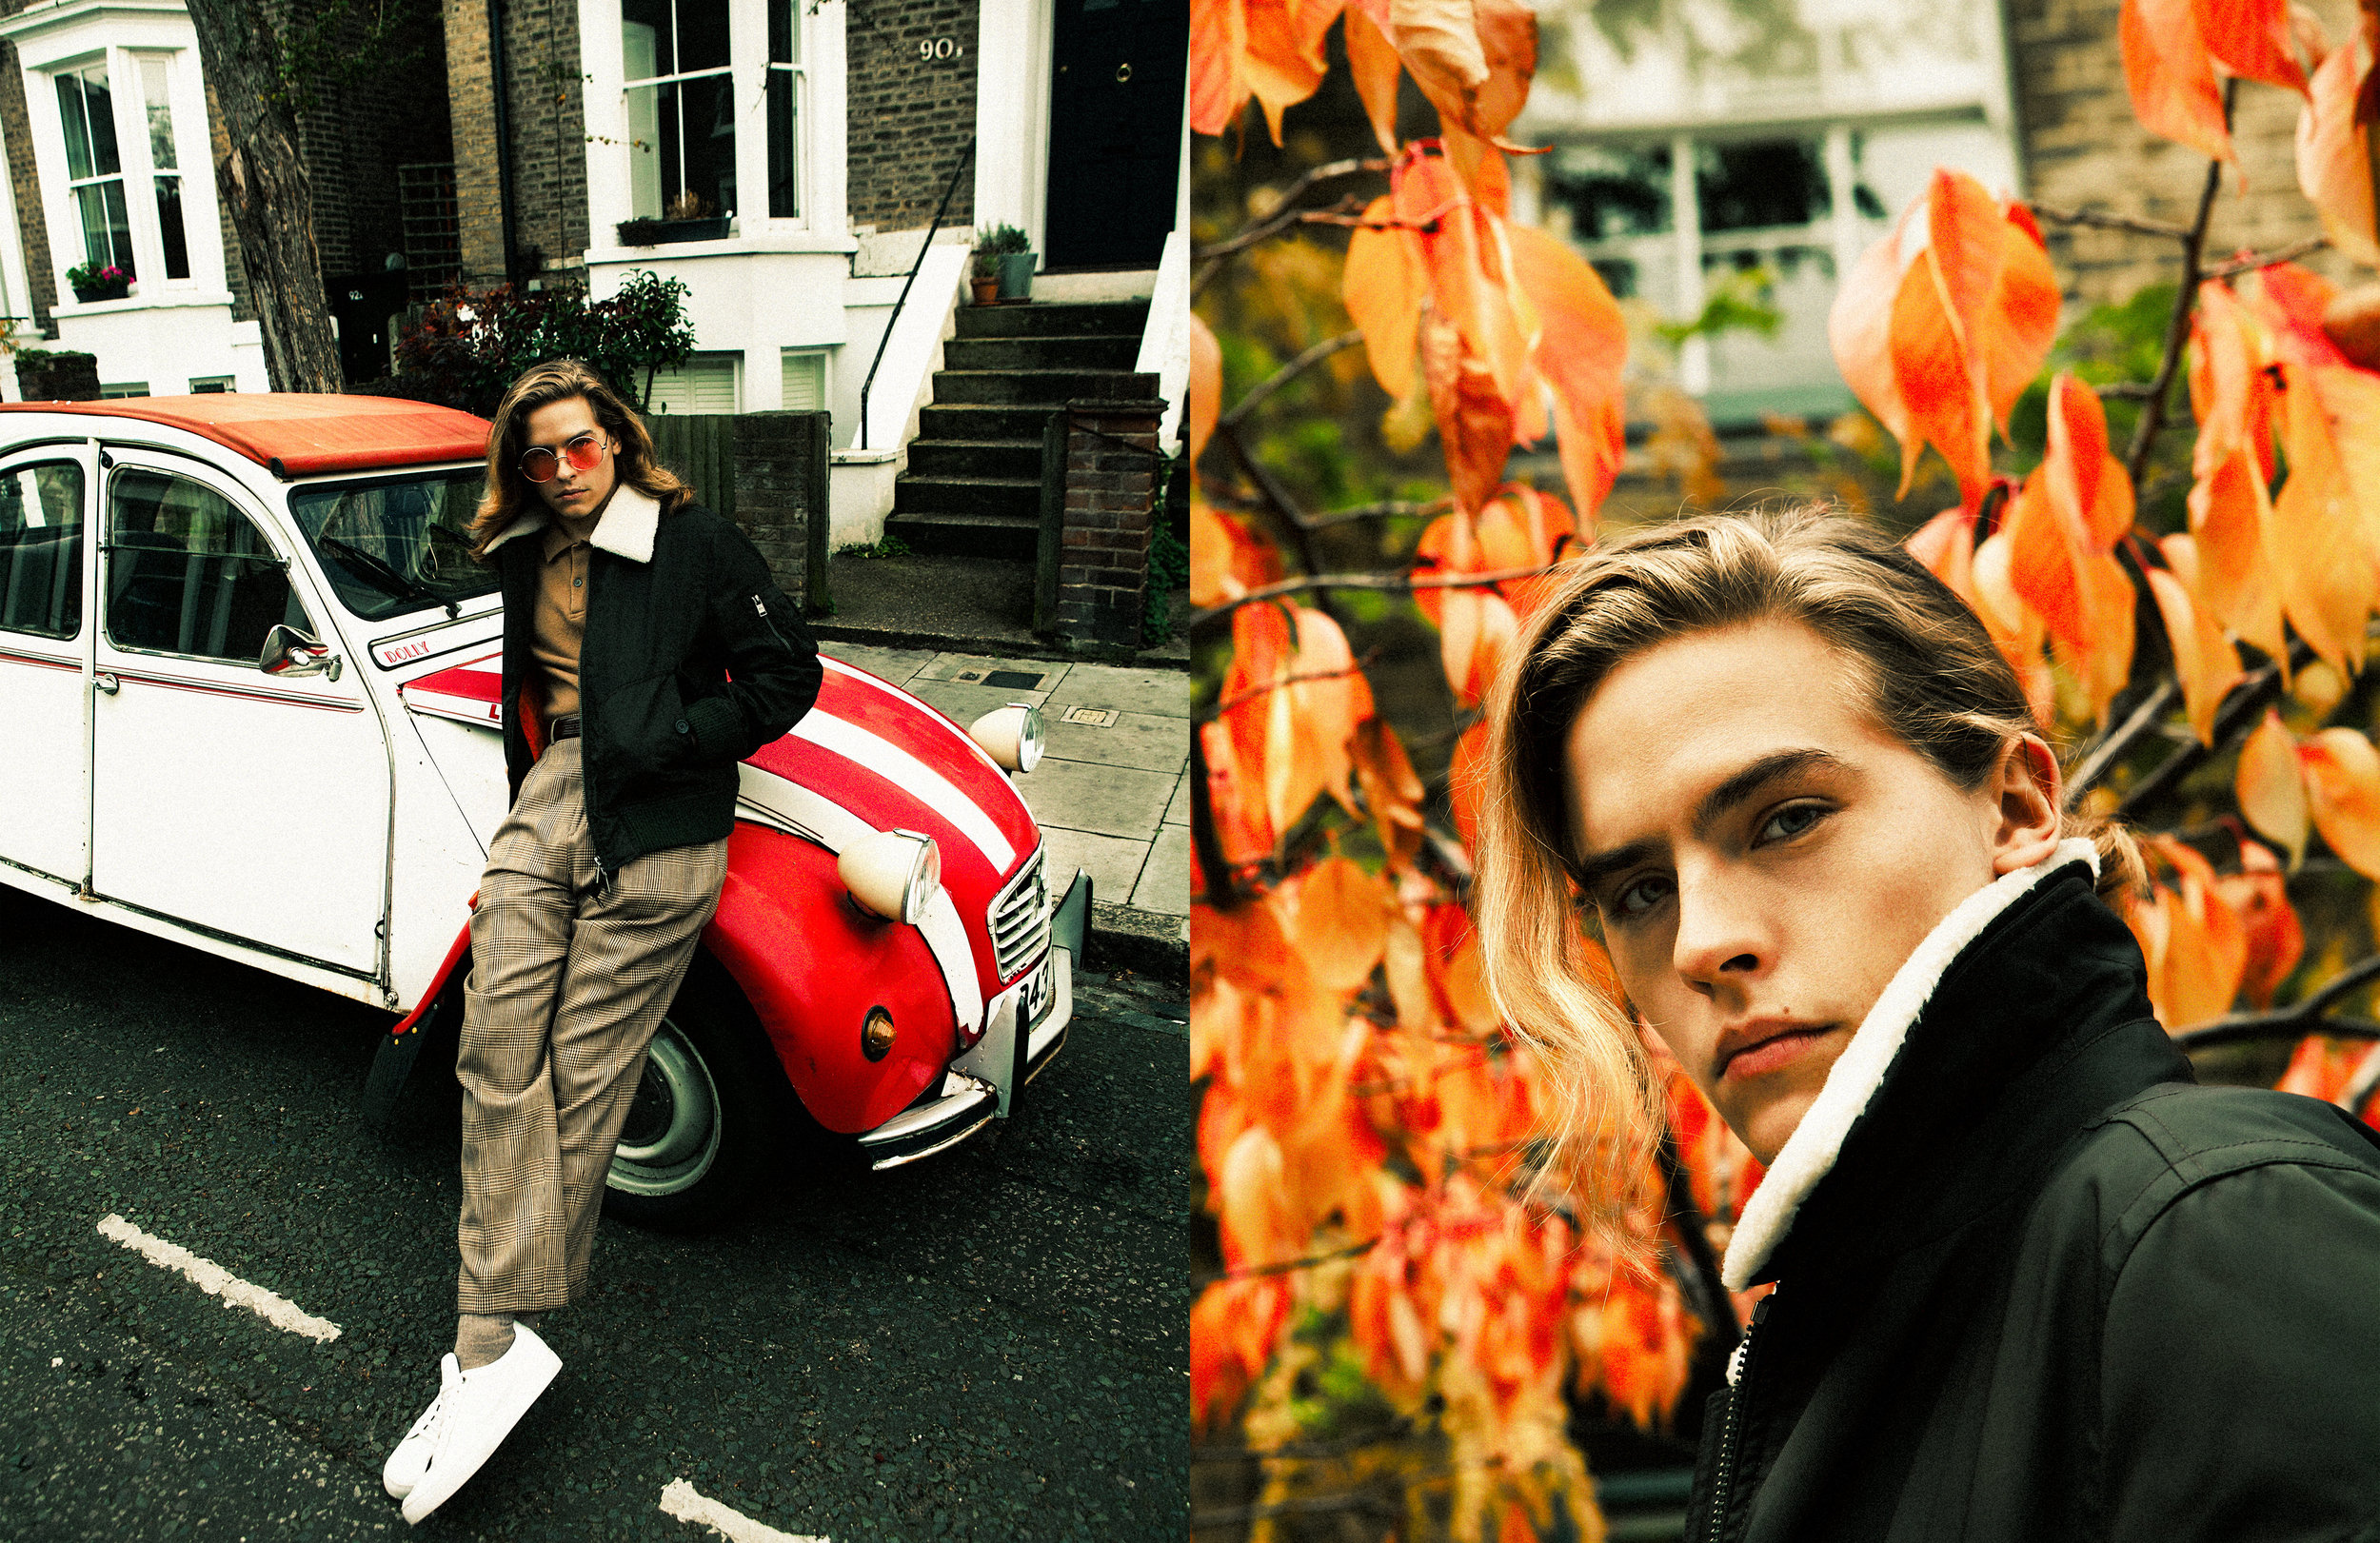 Dylan Sprouse for Fault